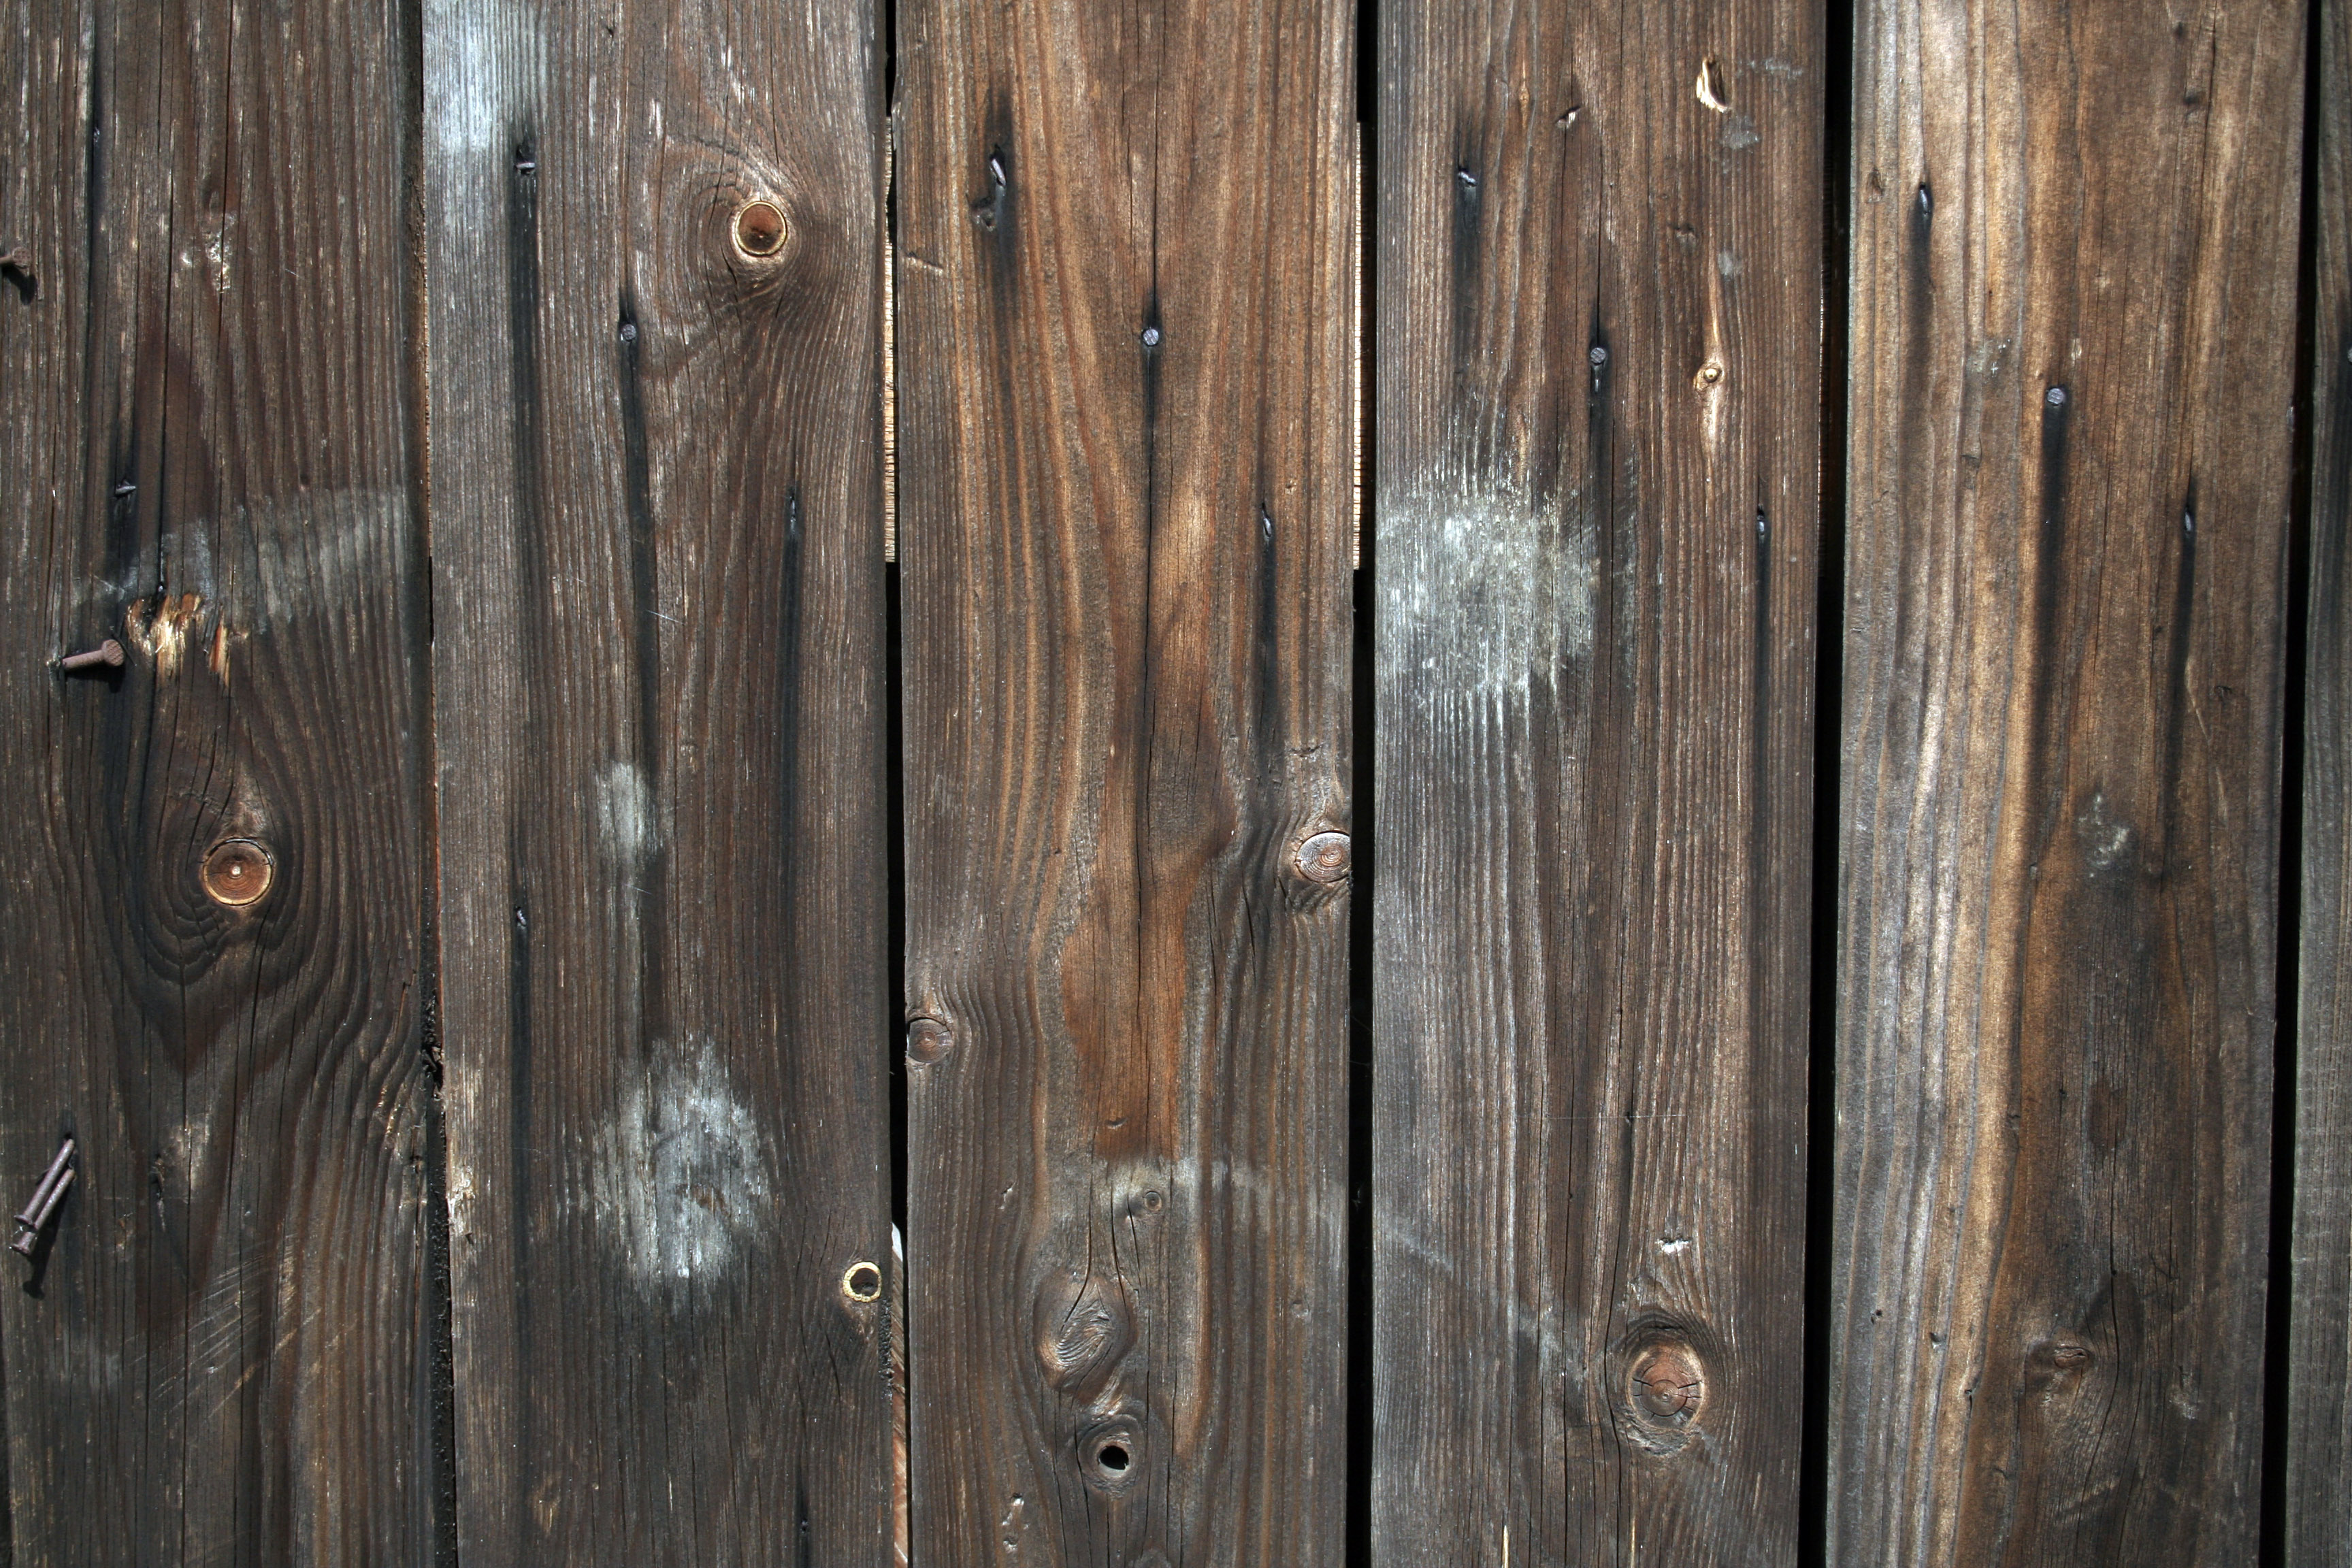 Wood texture photo free download - Download Wood Planks Old Texture